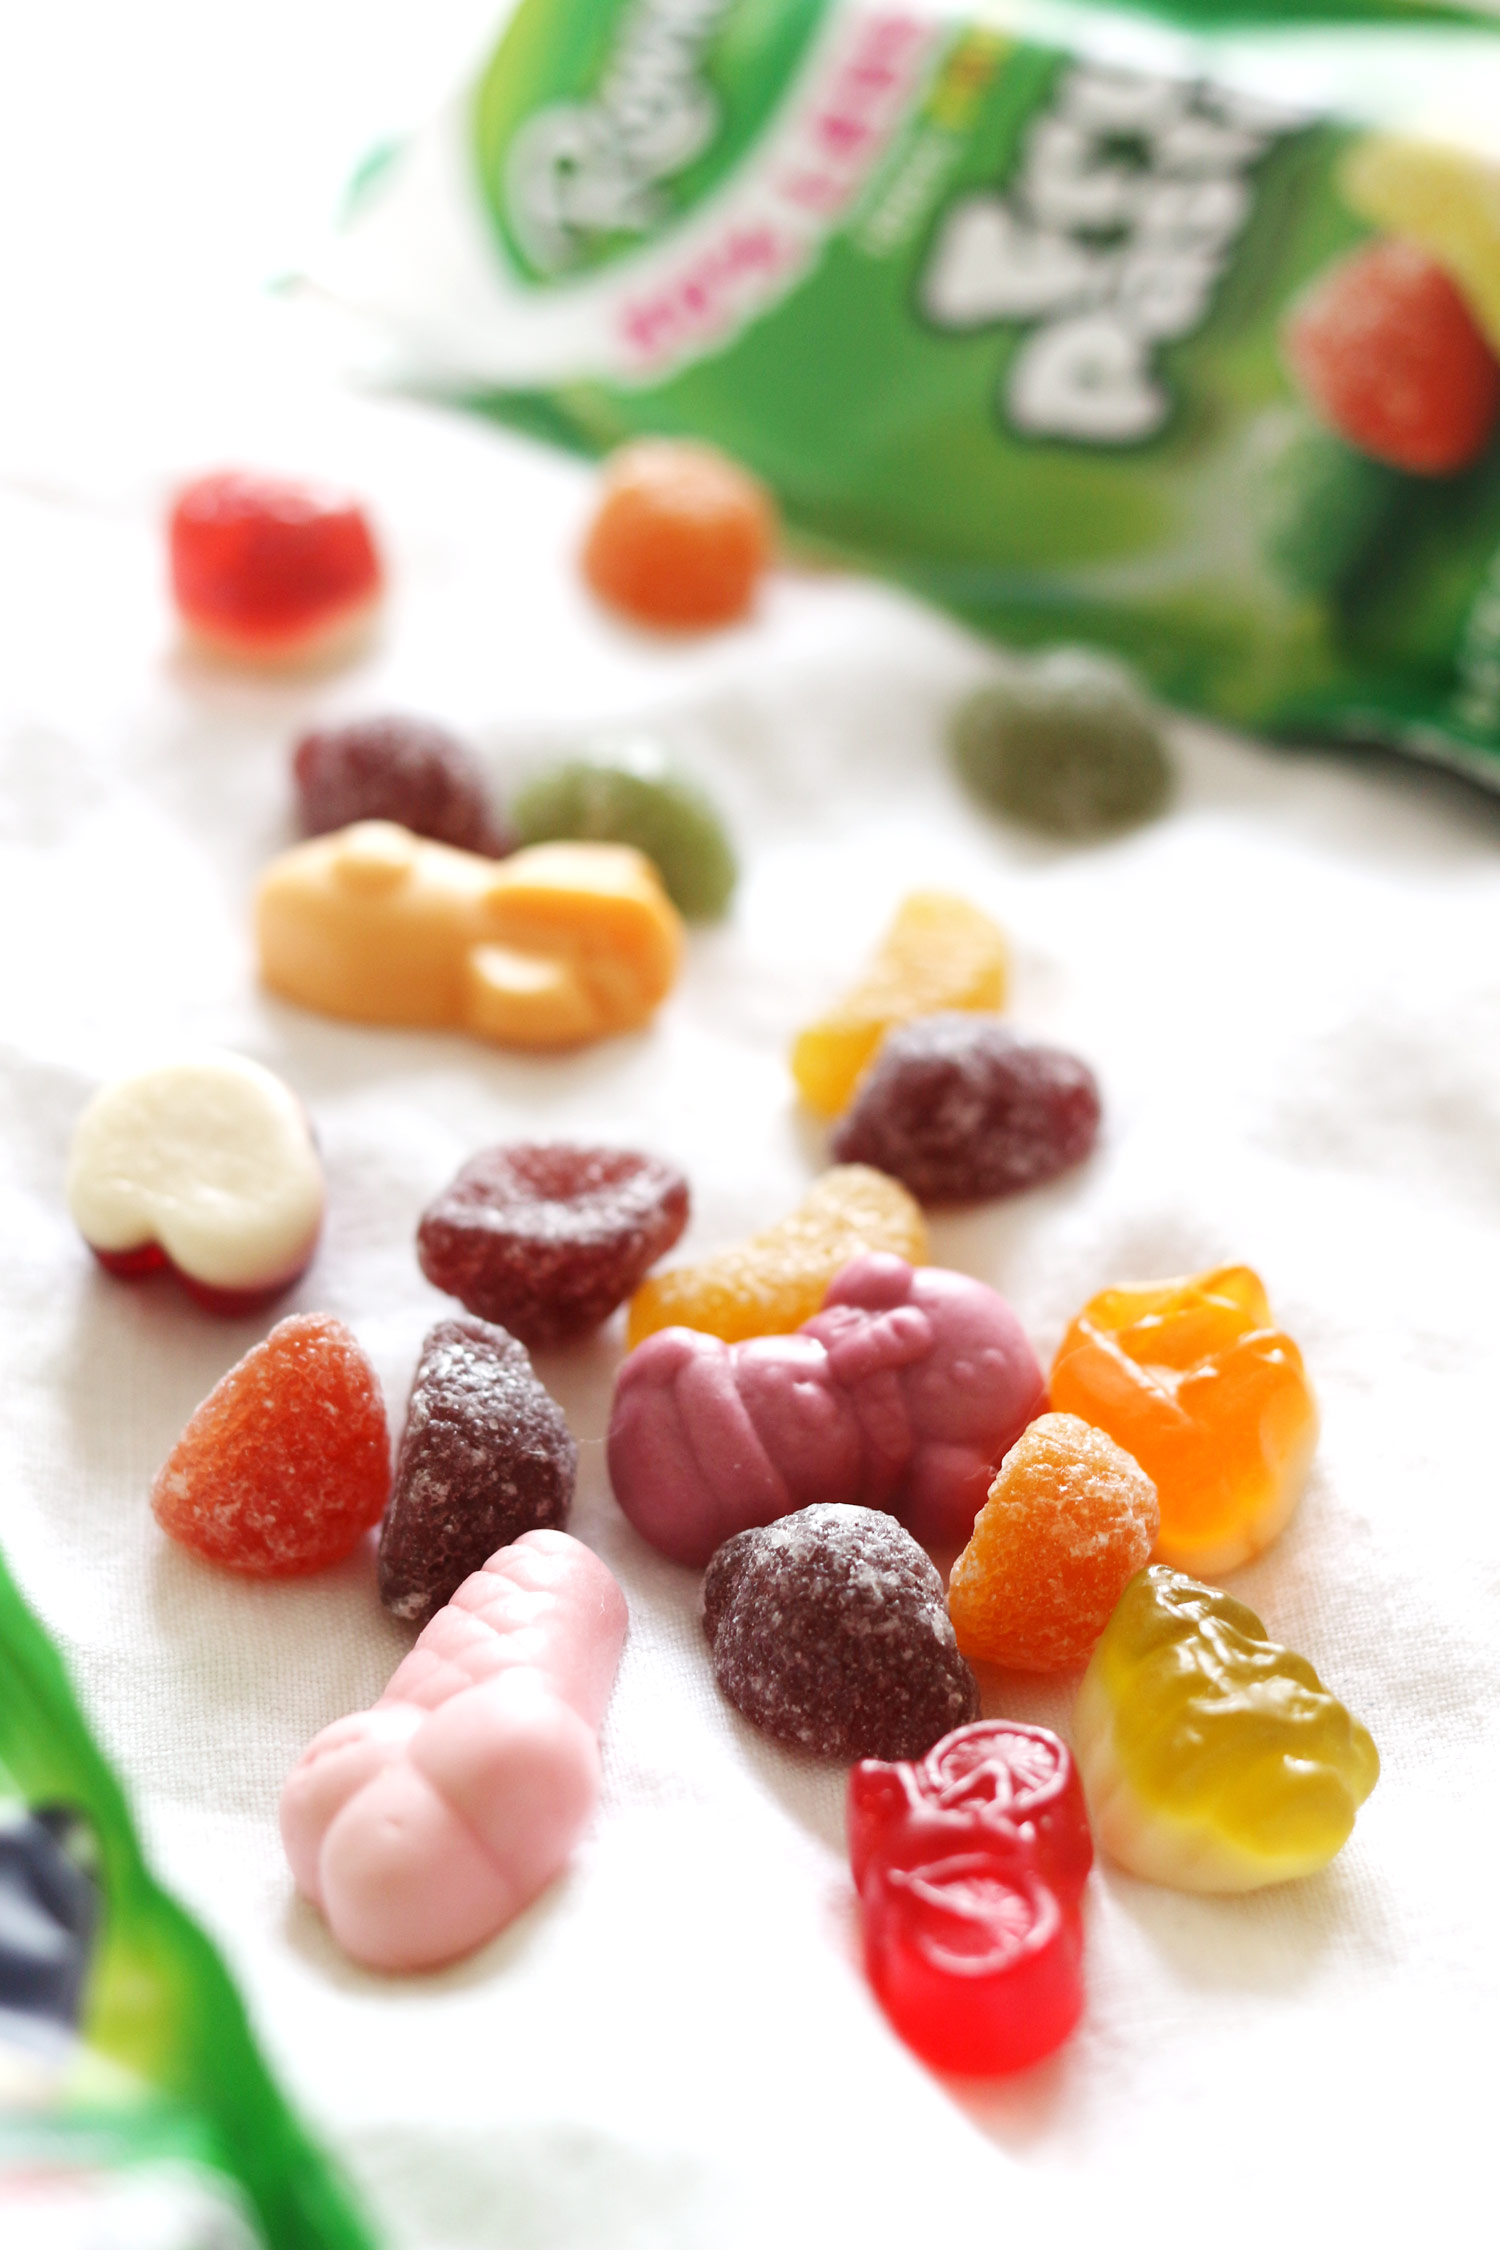 rowntrees-30-less-sugar-fruit-pastilles-randoms-review.-2